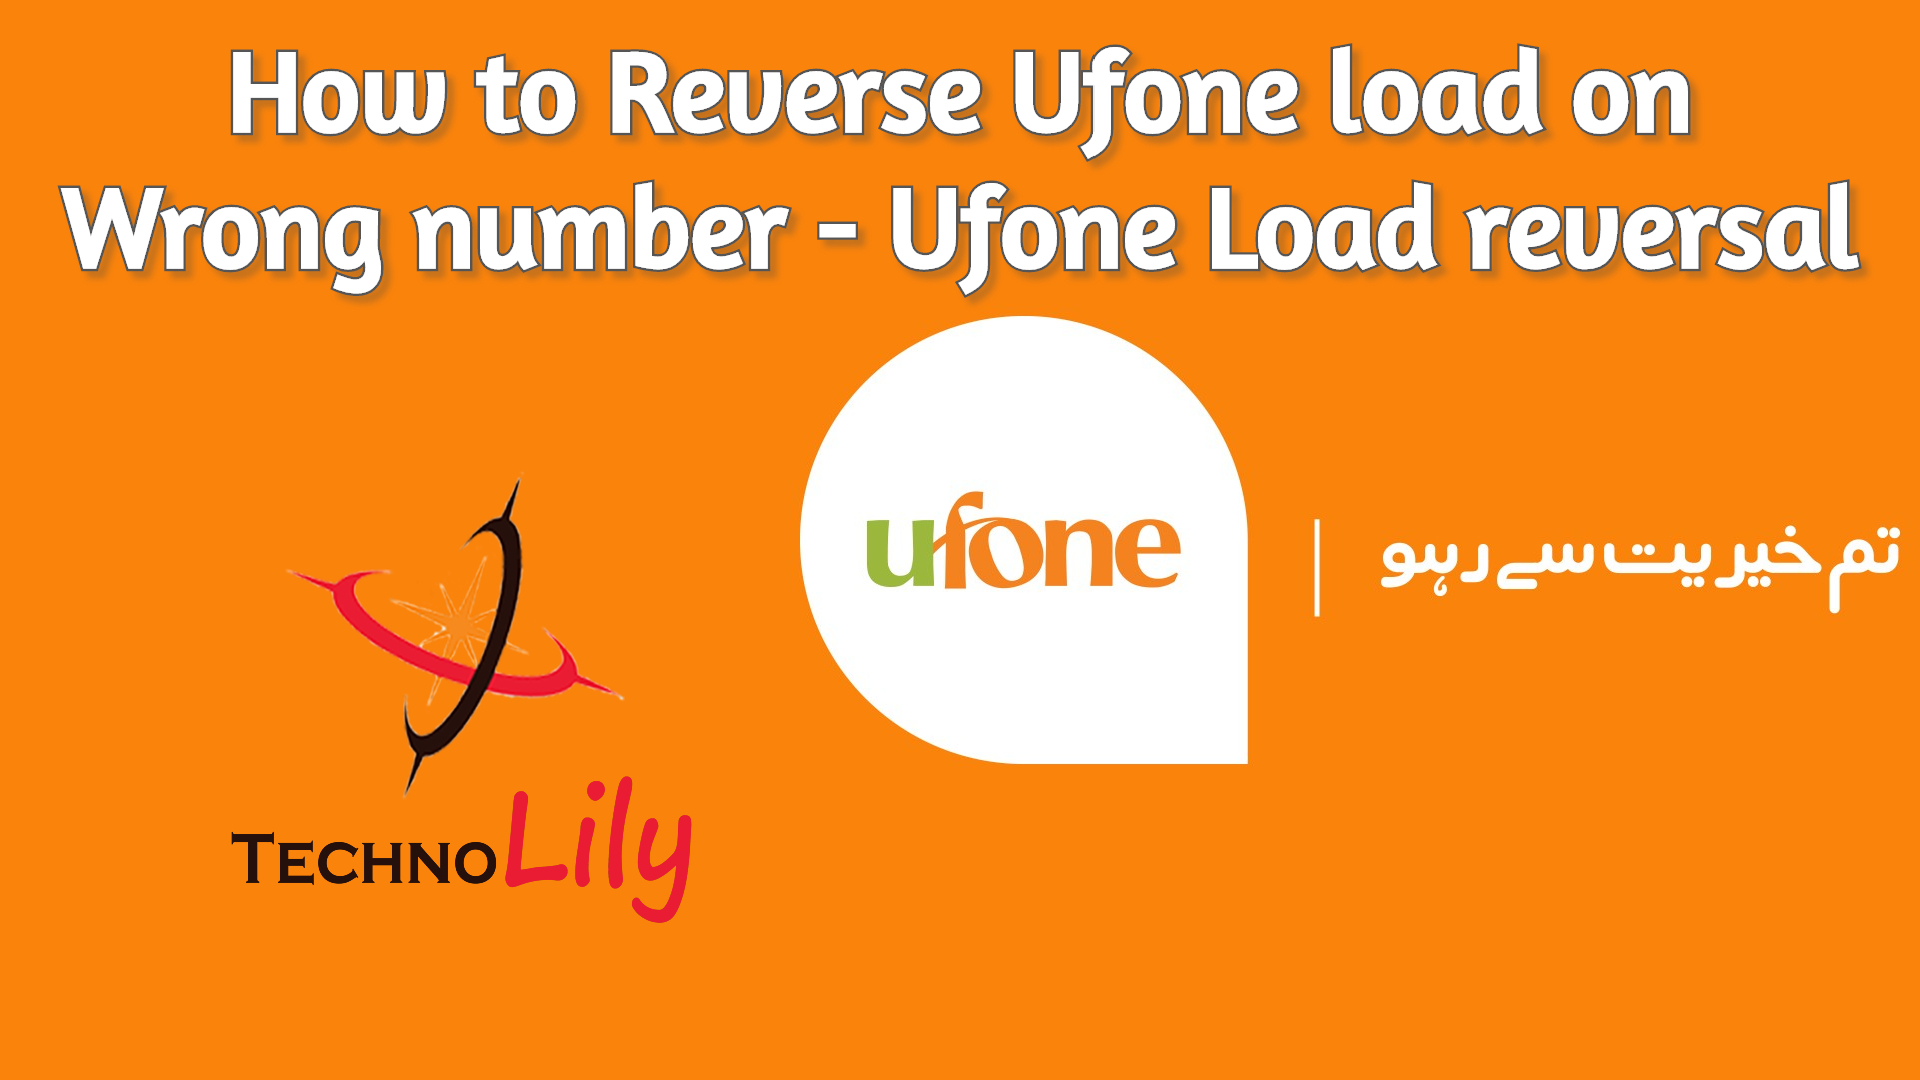 How to Return Ufone load on Wrong number - Ufone Load reversal code 2020